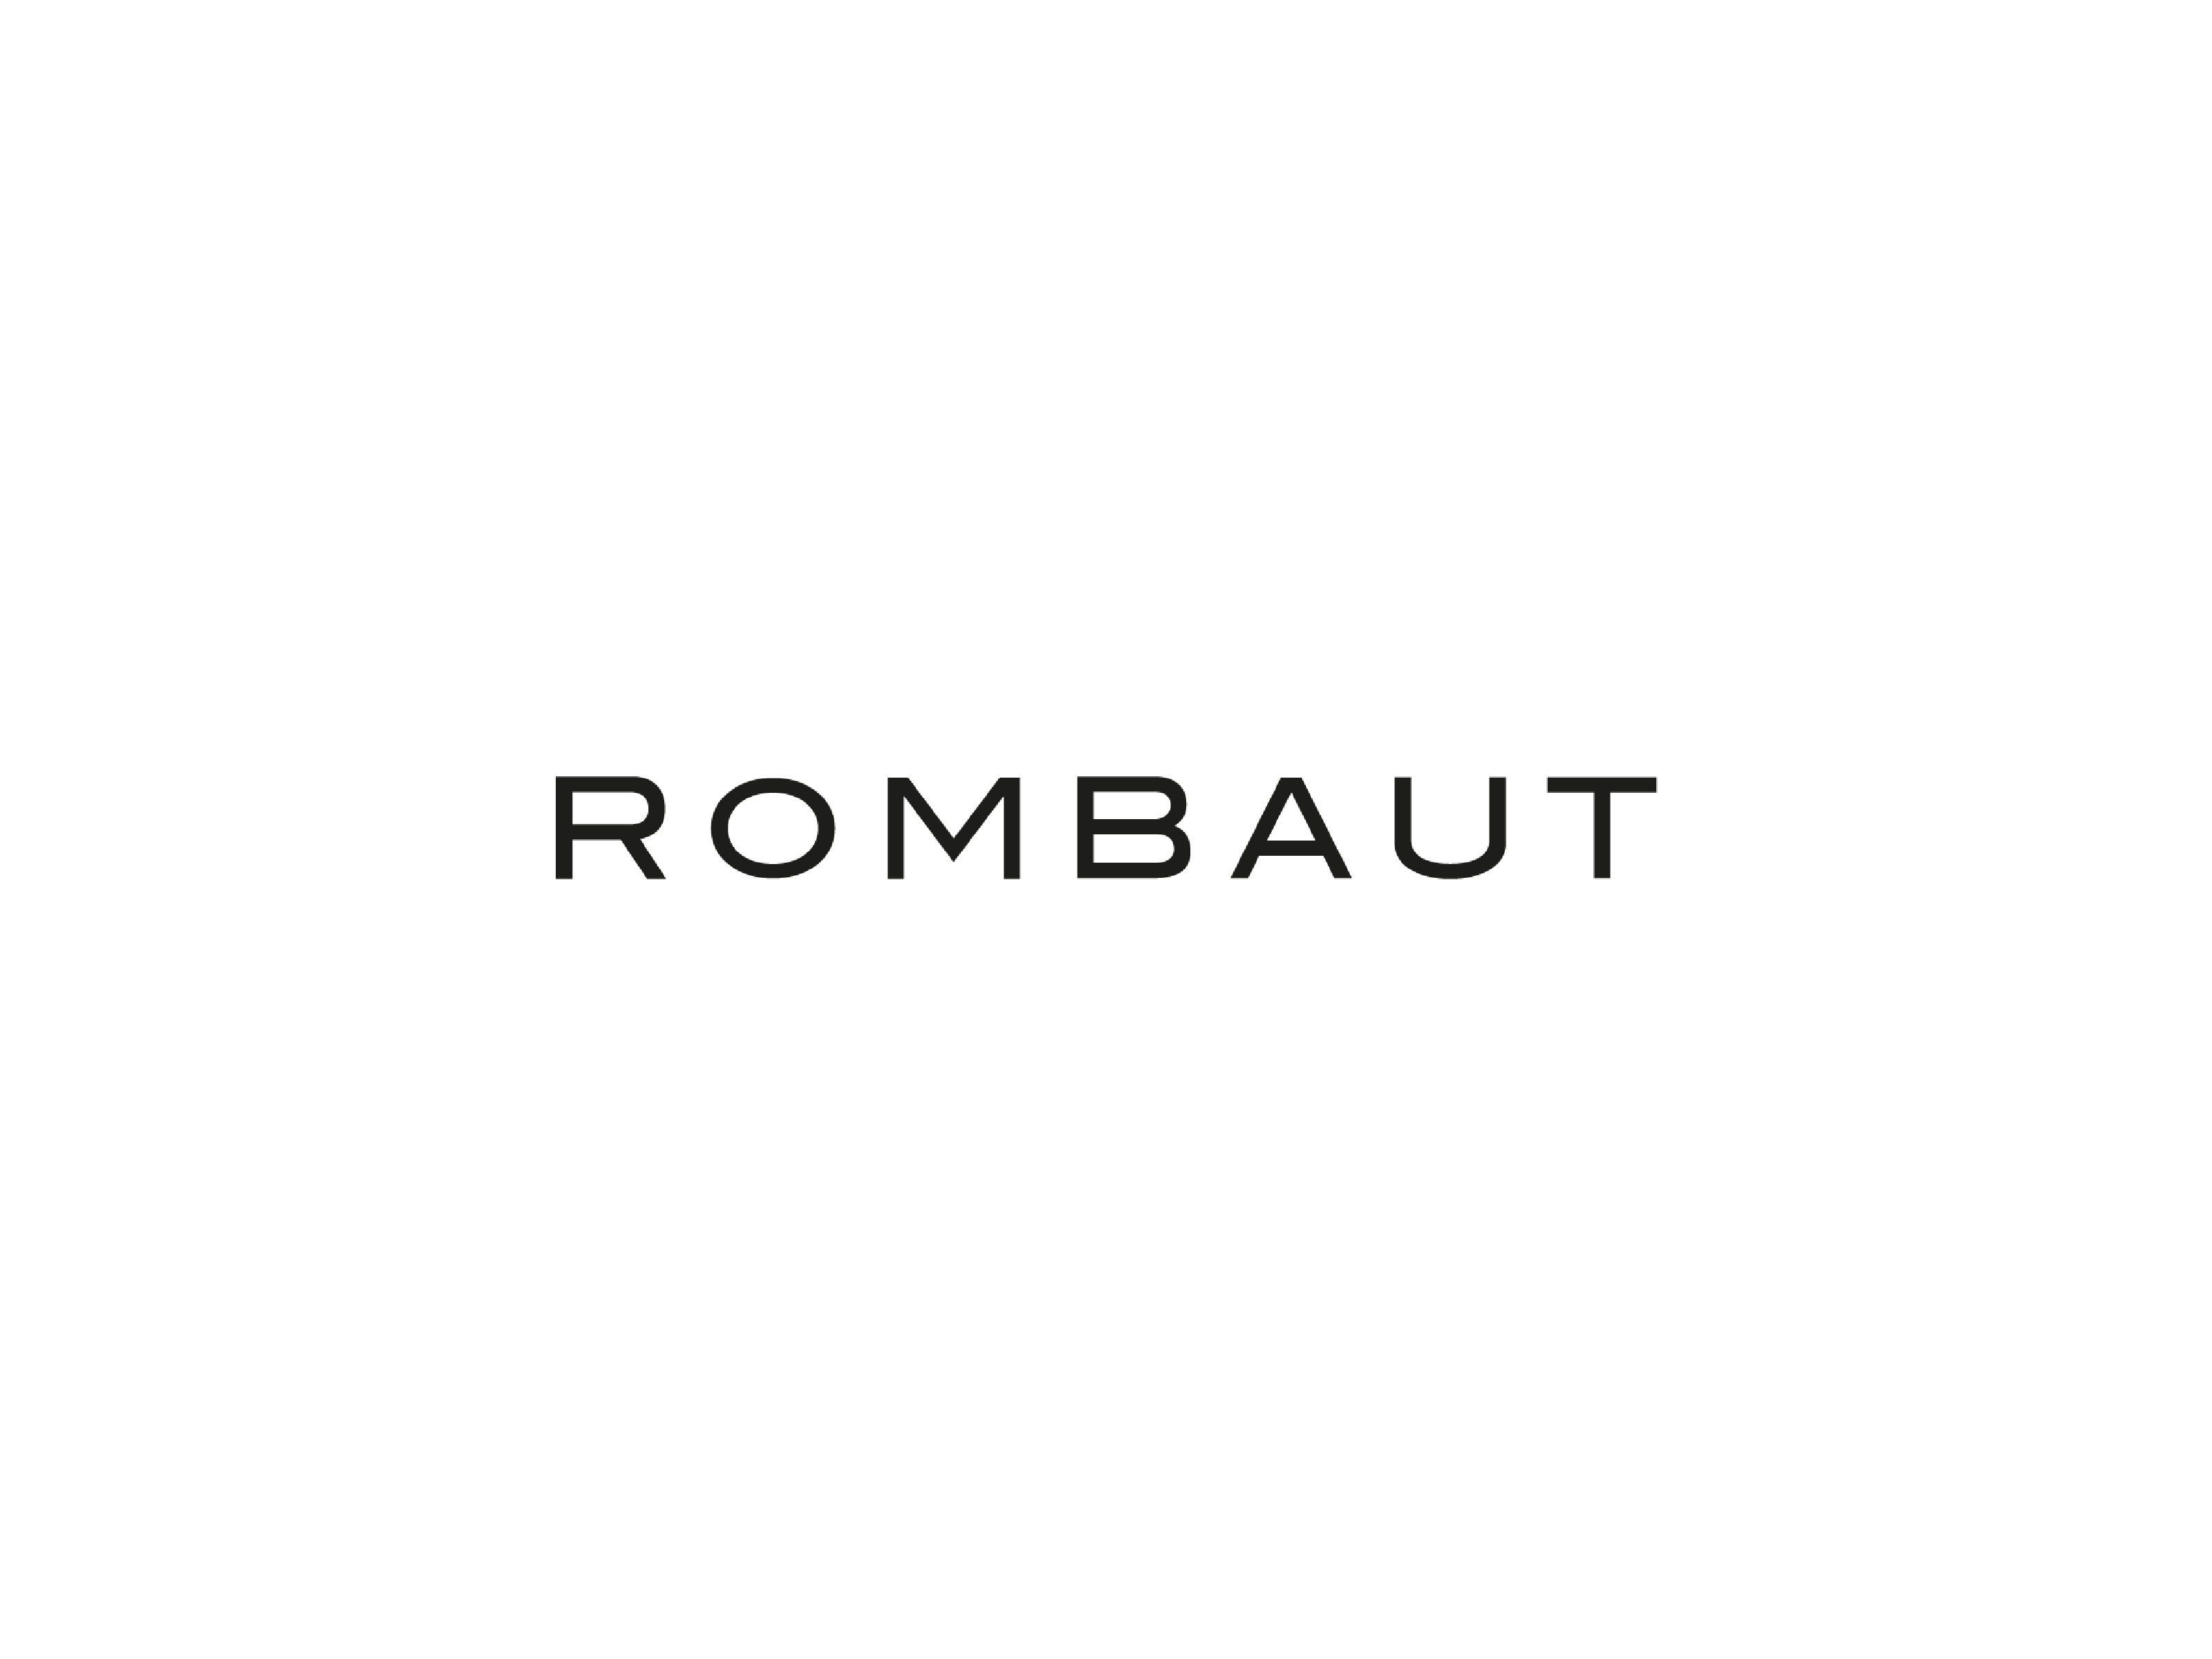 image of Rombaut